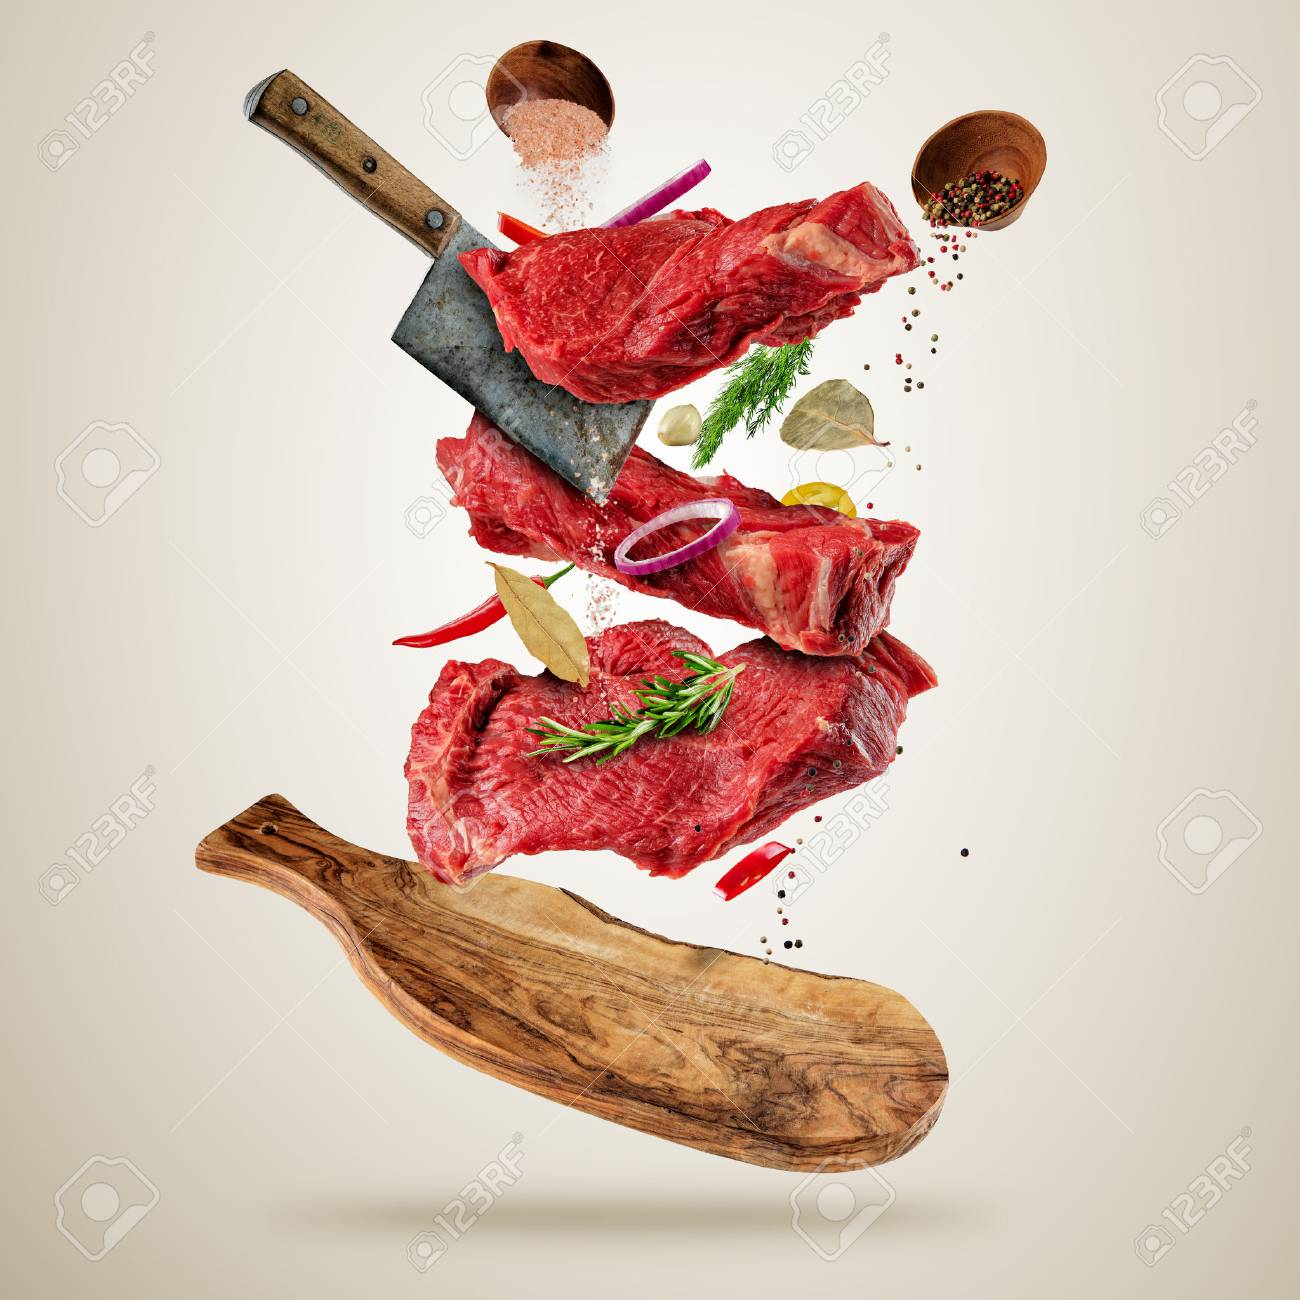 Flying pieces of raw beef steaks, with herbs, served on woodenboard. Meat chopper cuting the flesh. Concept of food preparation in low gravity mode. Separated on smooth gray background - 74520641